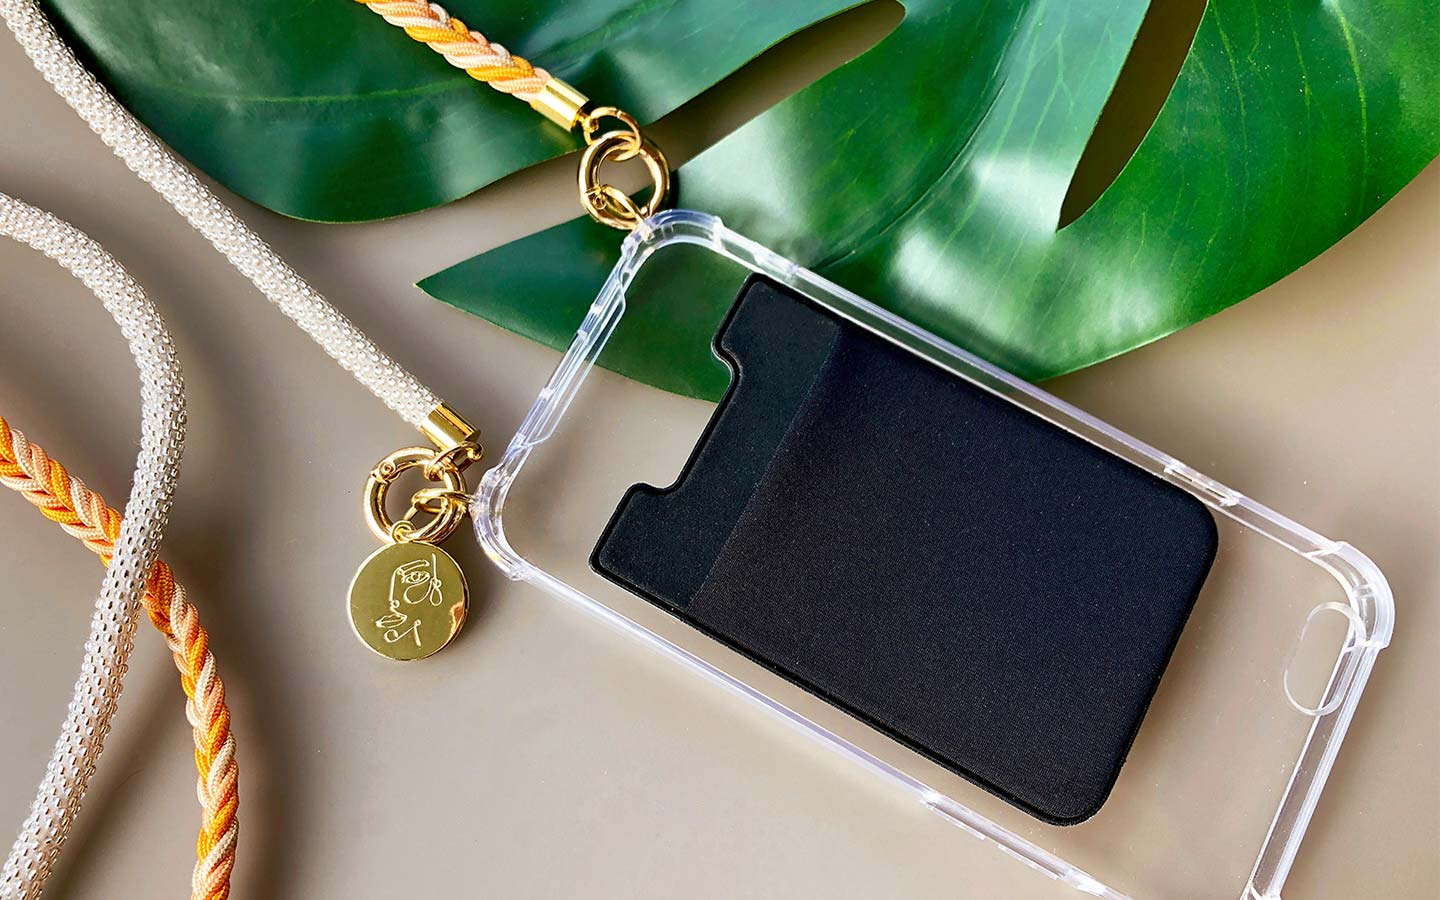 Cardholder für Handykette / Necklace Case